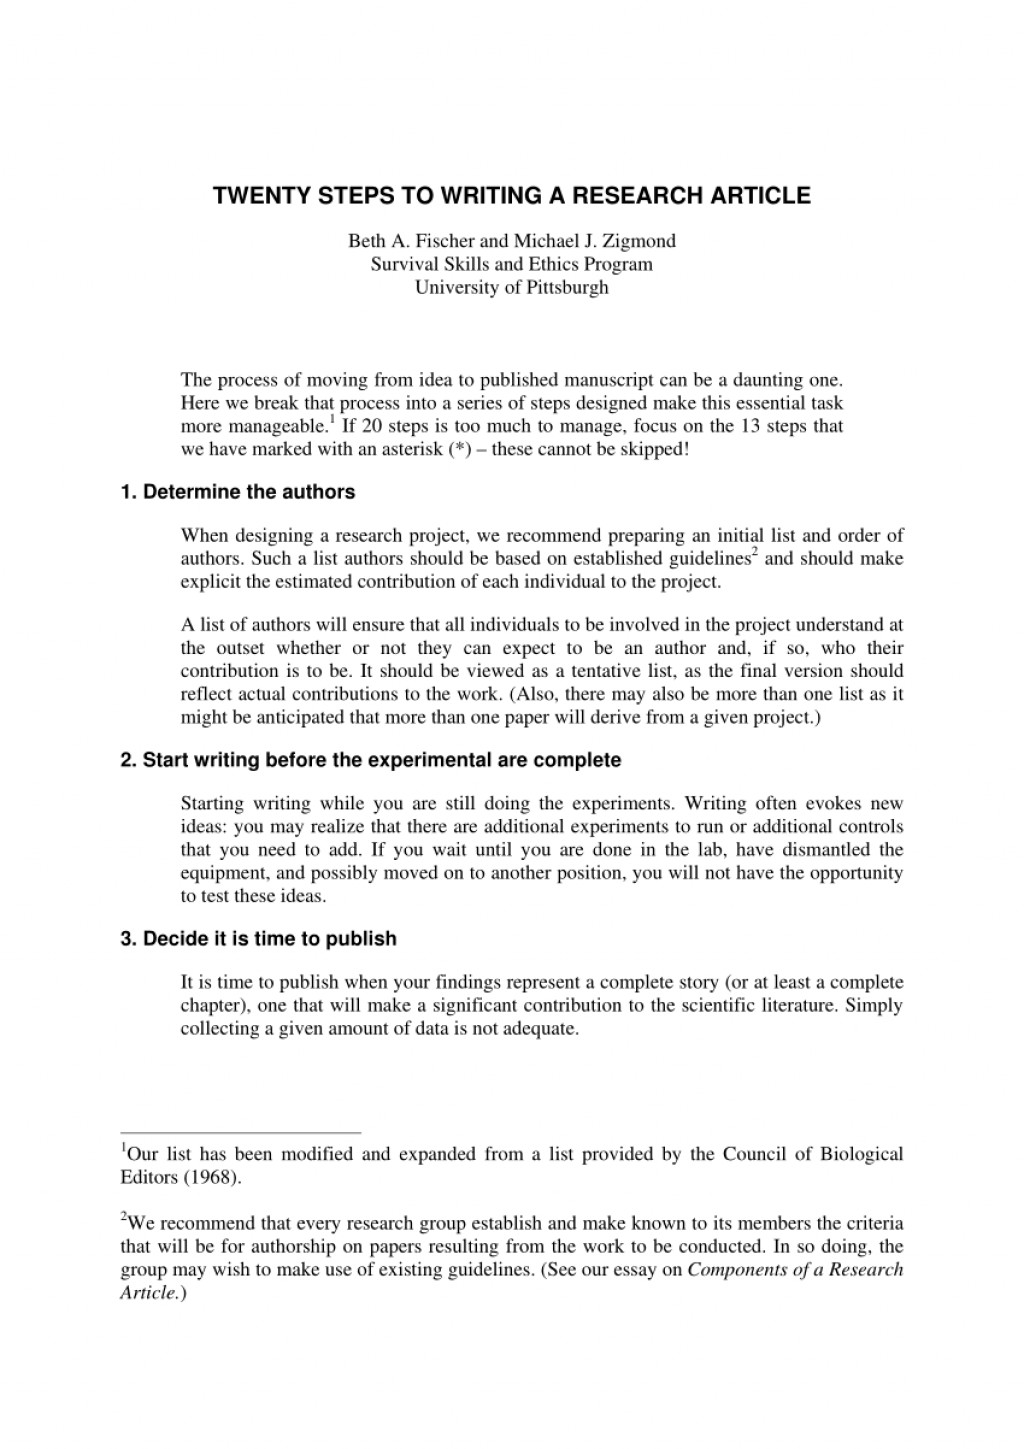 008 Steps For Writing Research Paper Breathtaking A In Ppt 10 To Write Basic Easy Large